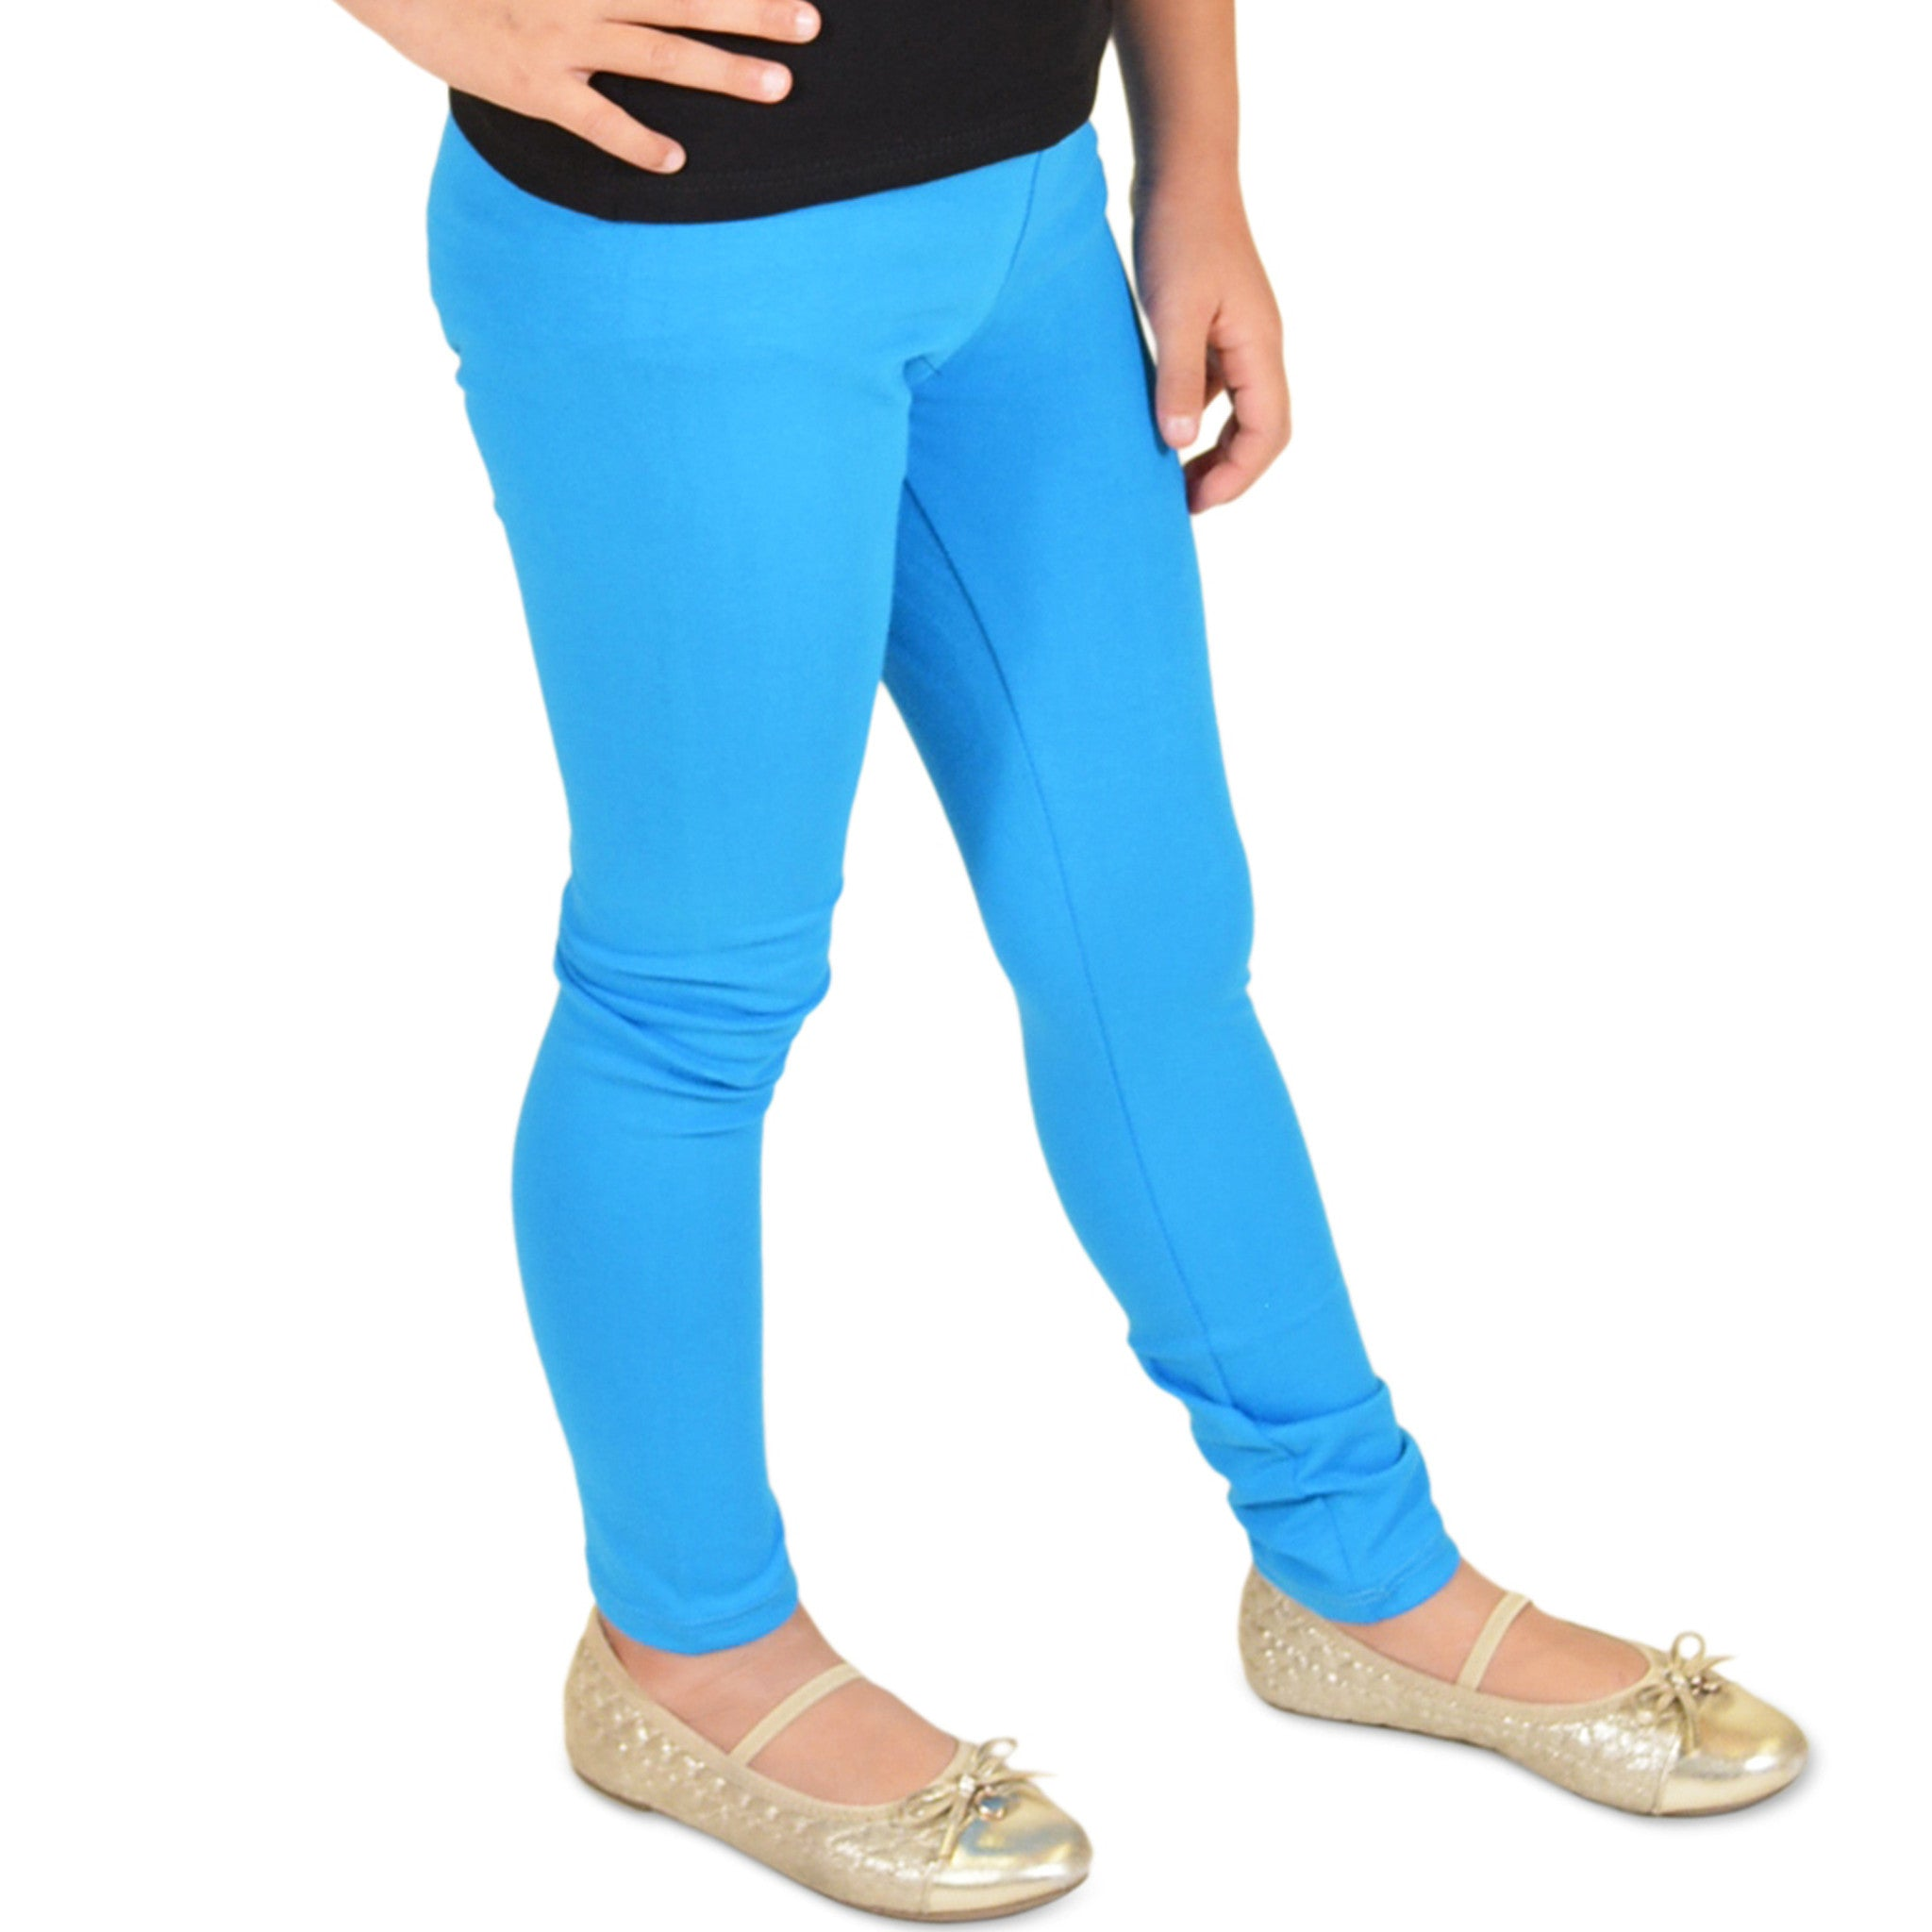 Teamwear Cotton Leggings 2